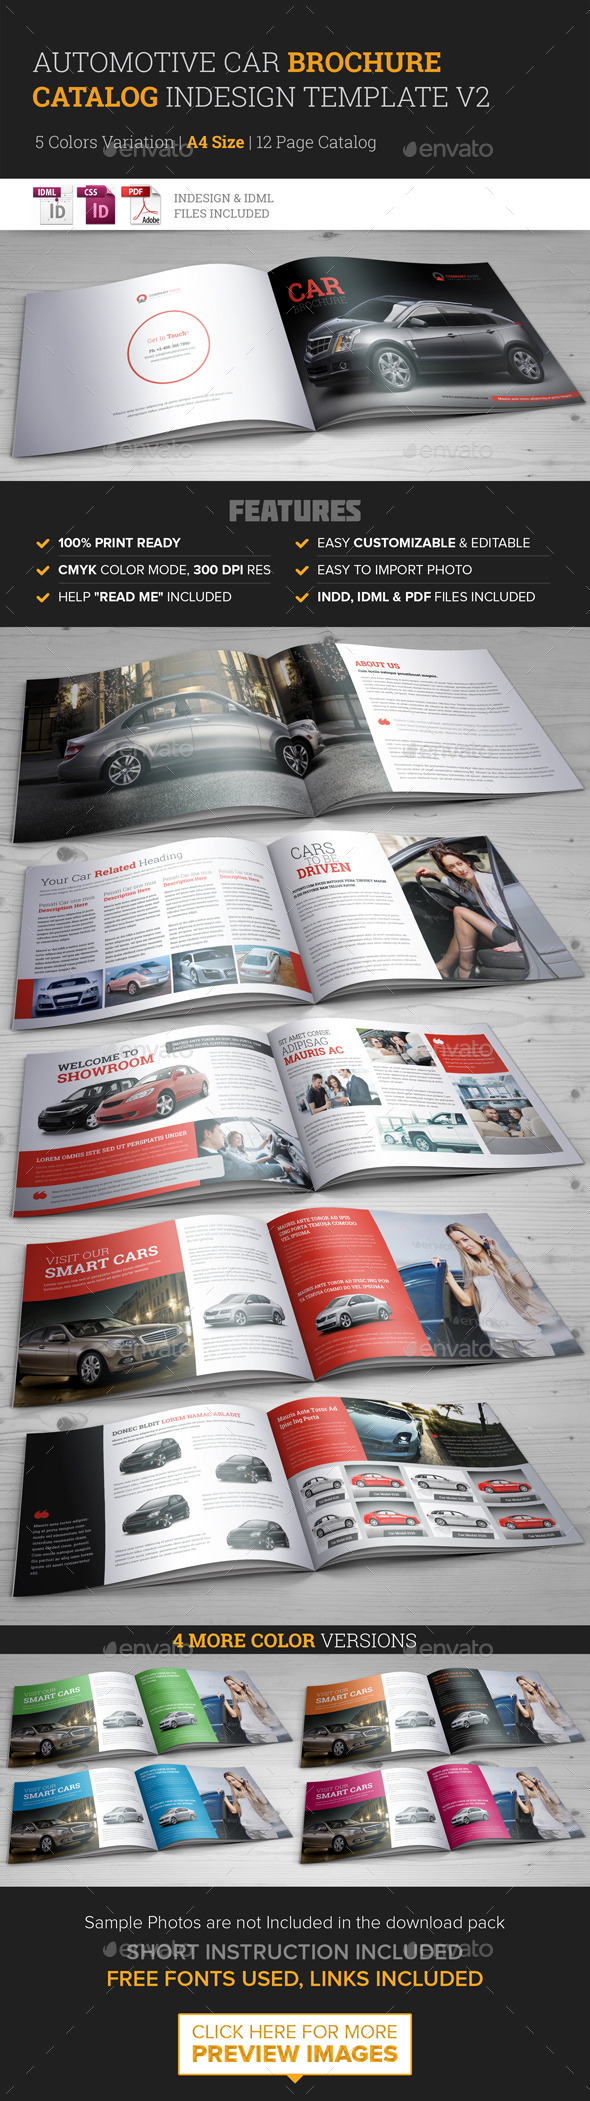 Automotive Car Brochure Catalog InDesign Template  - Catalogs Brochures